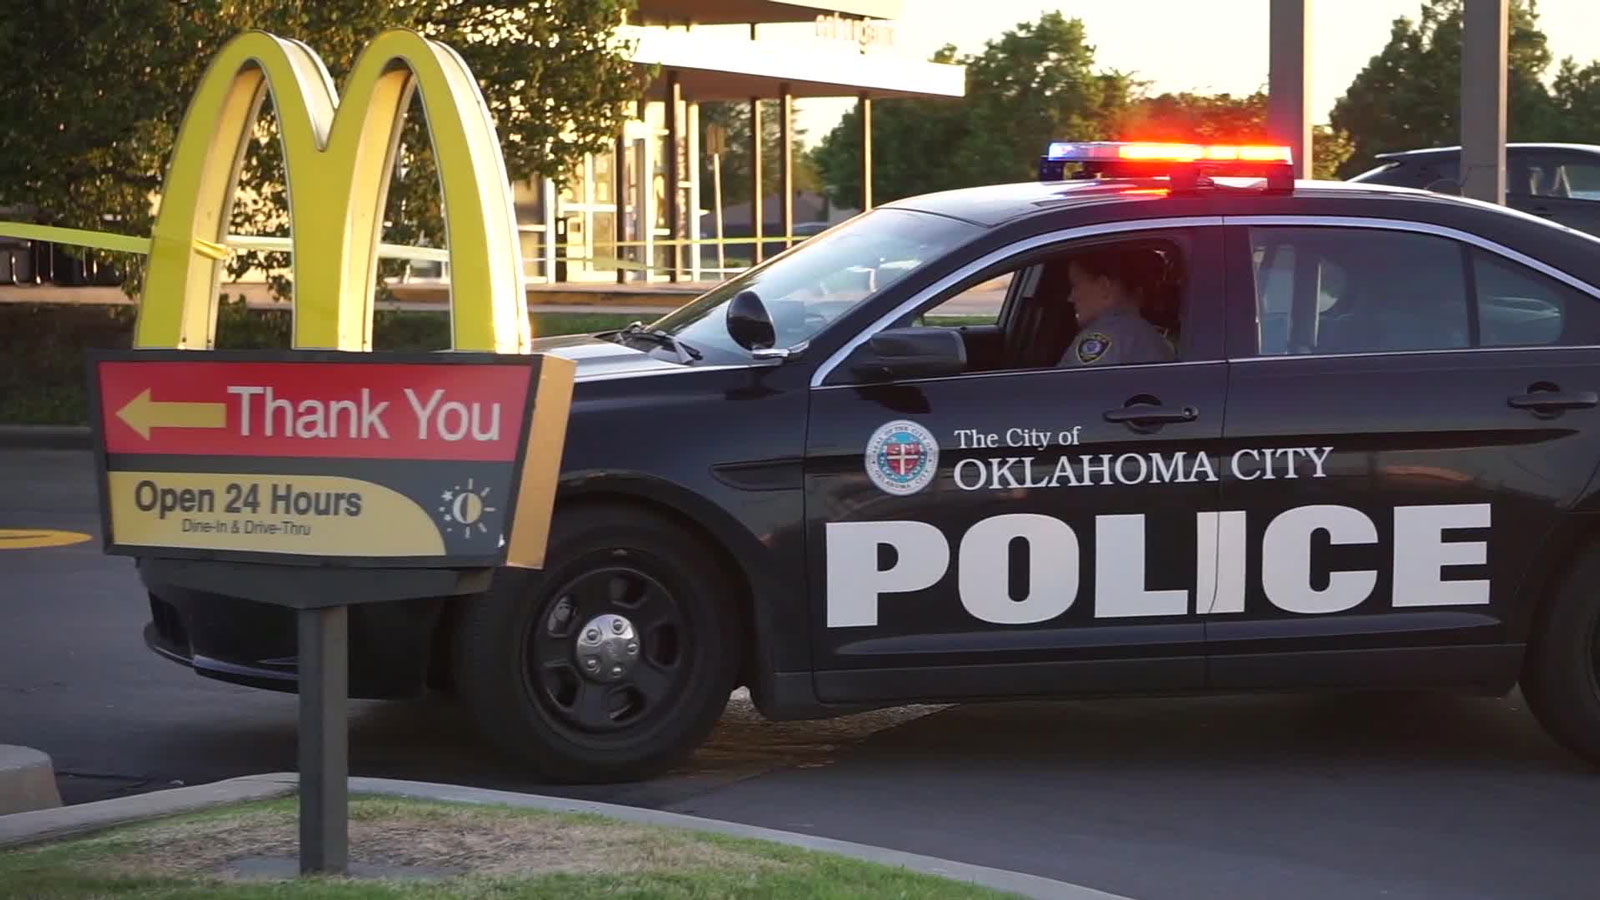 Oklahoma City Police say two suspects shot McDonald's employees after being told to leave due to coronavirus restrictions.